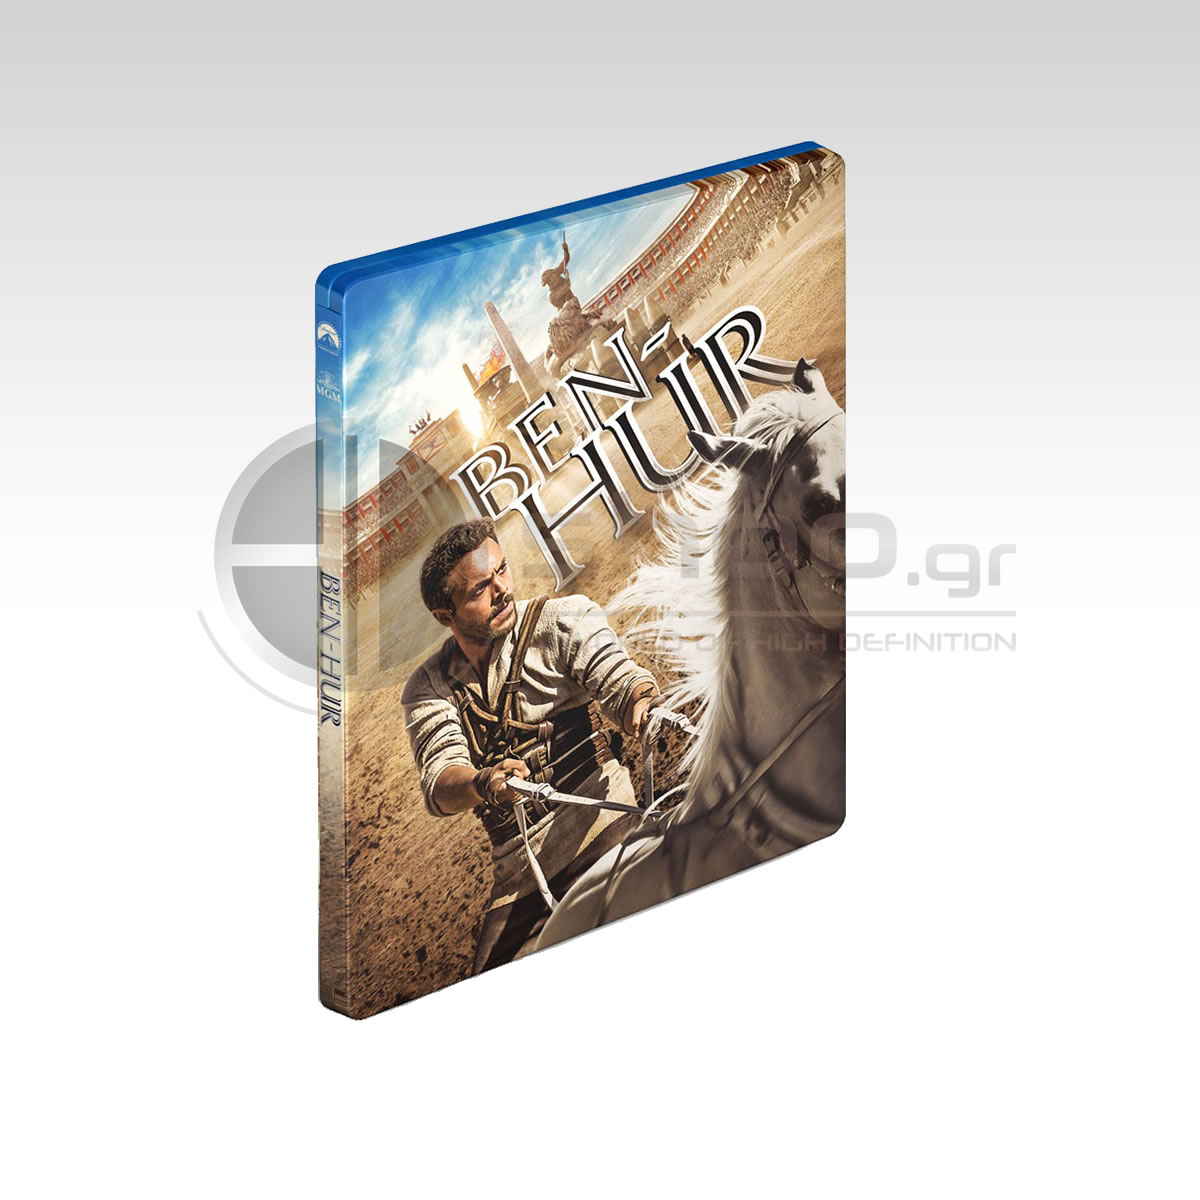 BEN-HUR [2016] Limited Edition Steelbook (BLU-RAY)